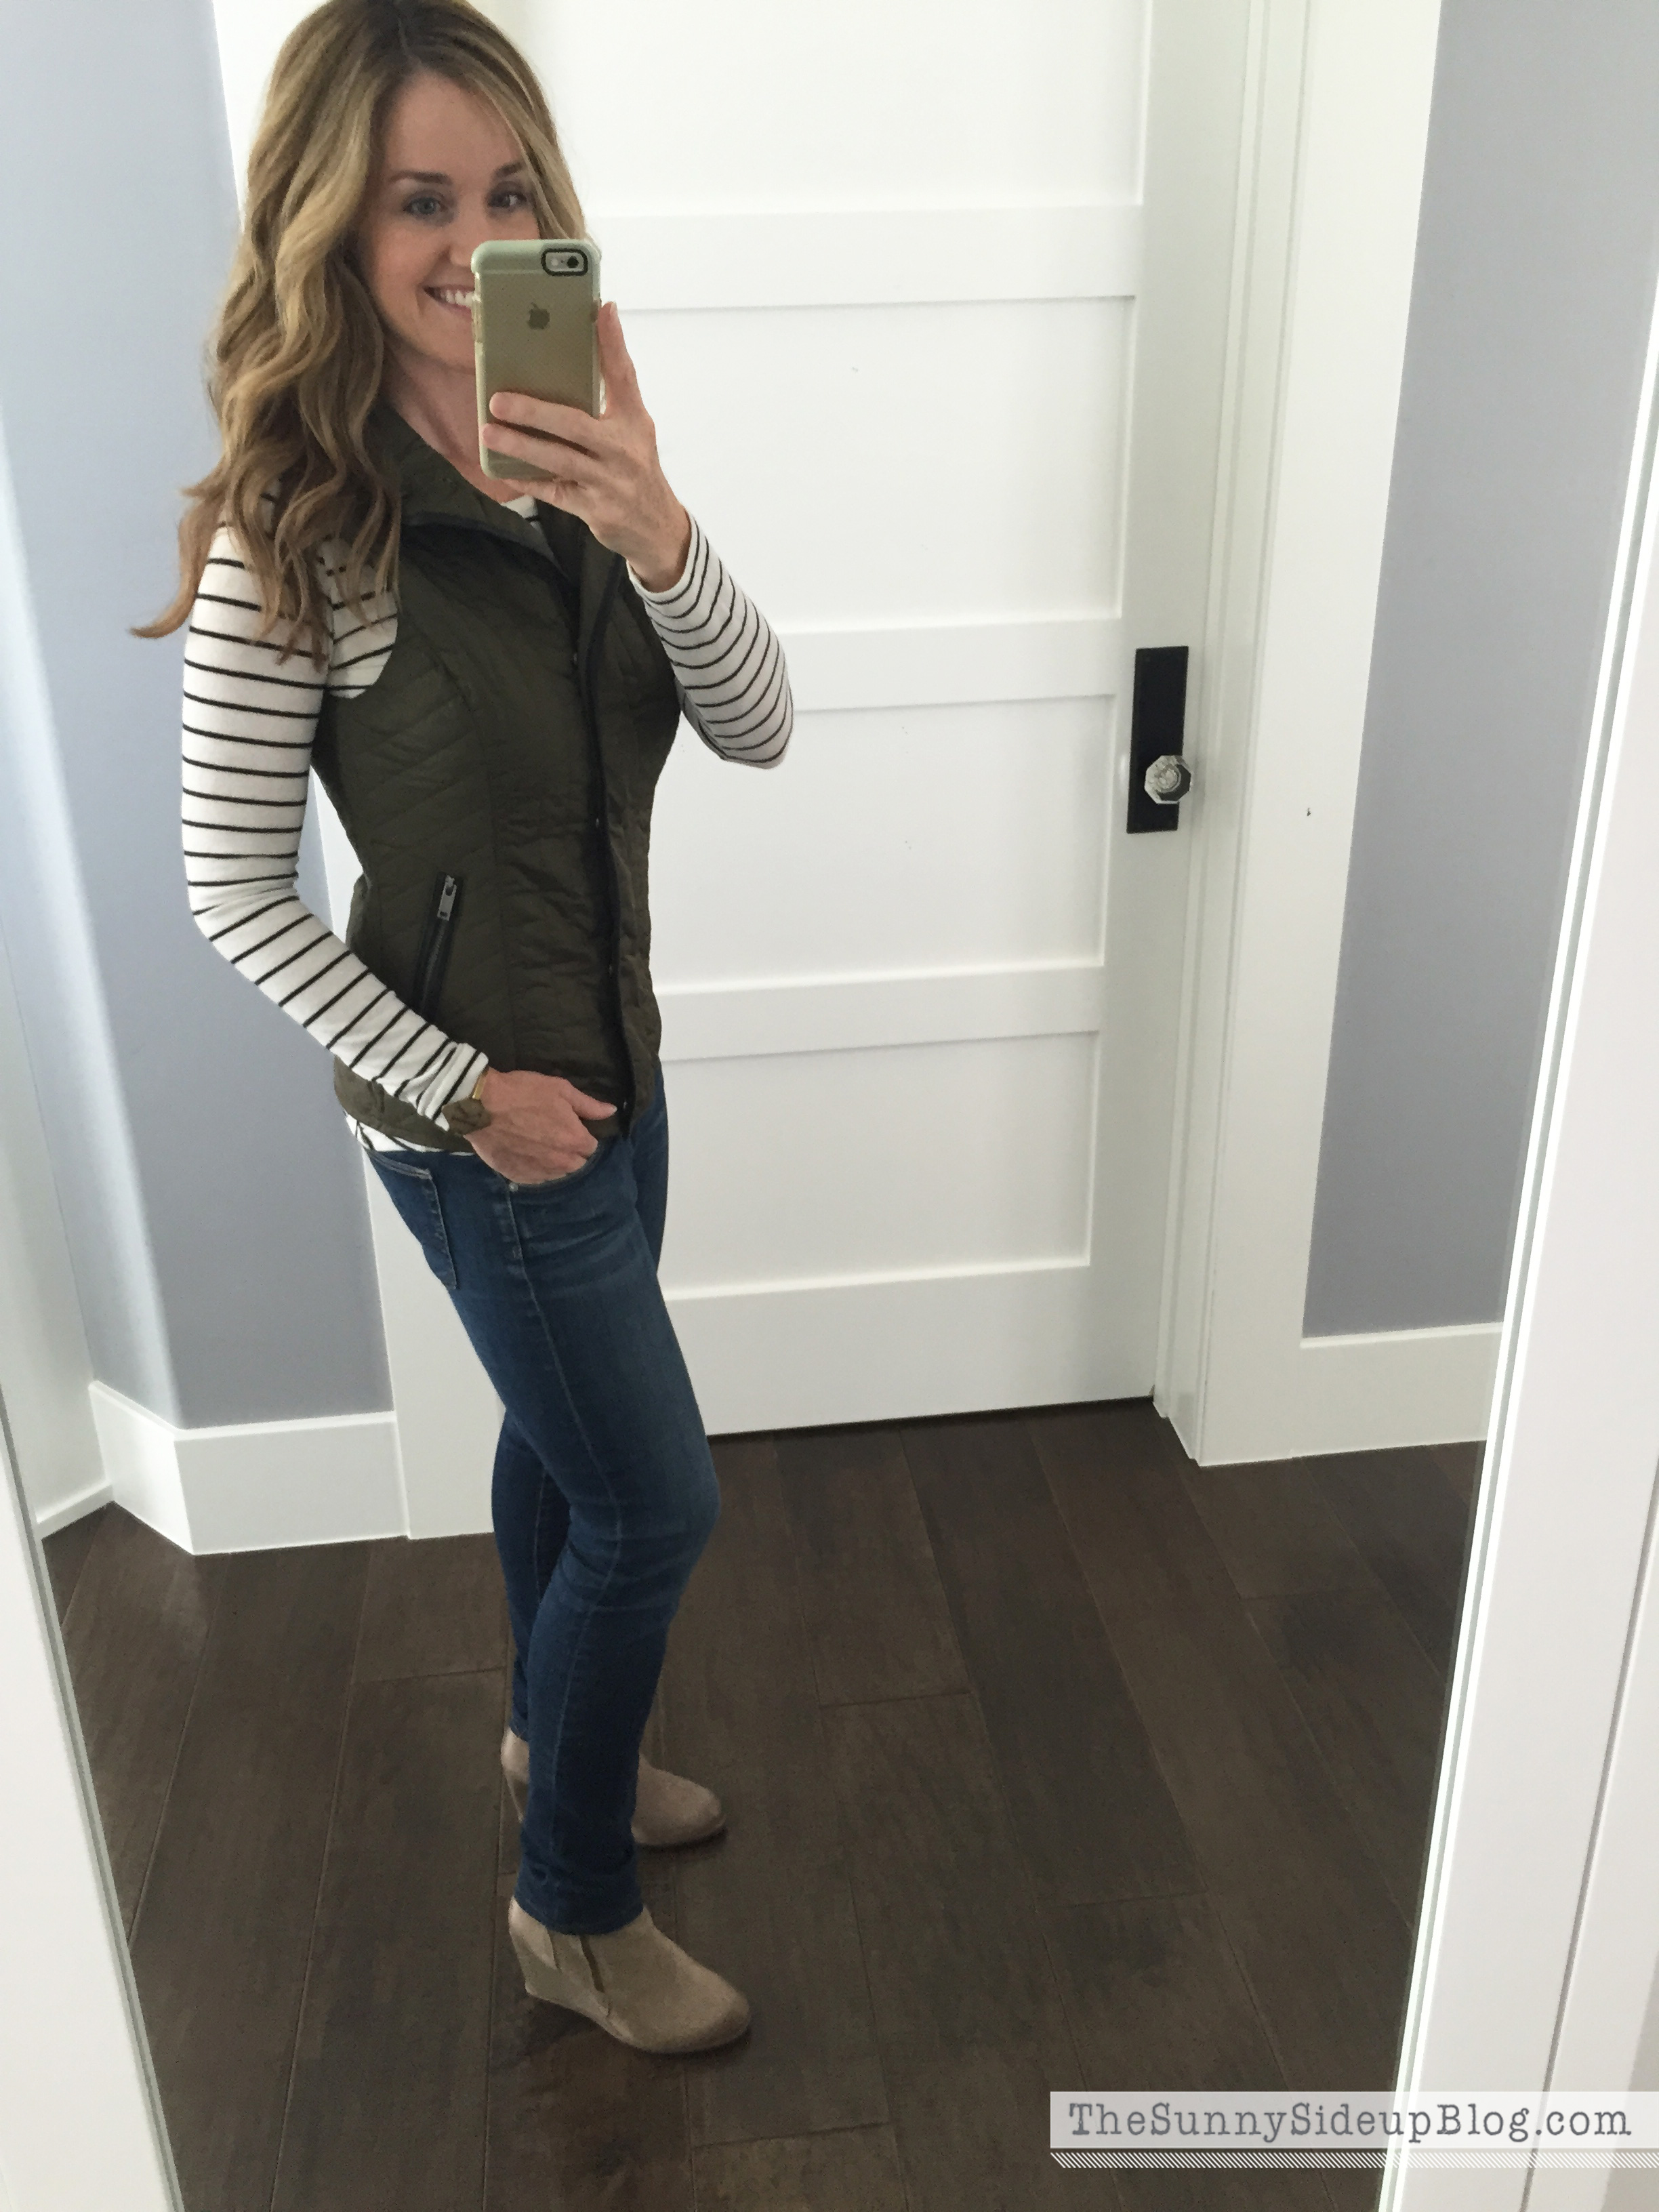 Fashion Friday – stripes and green!